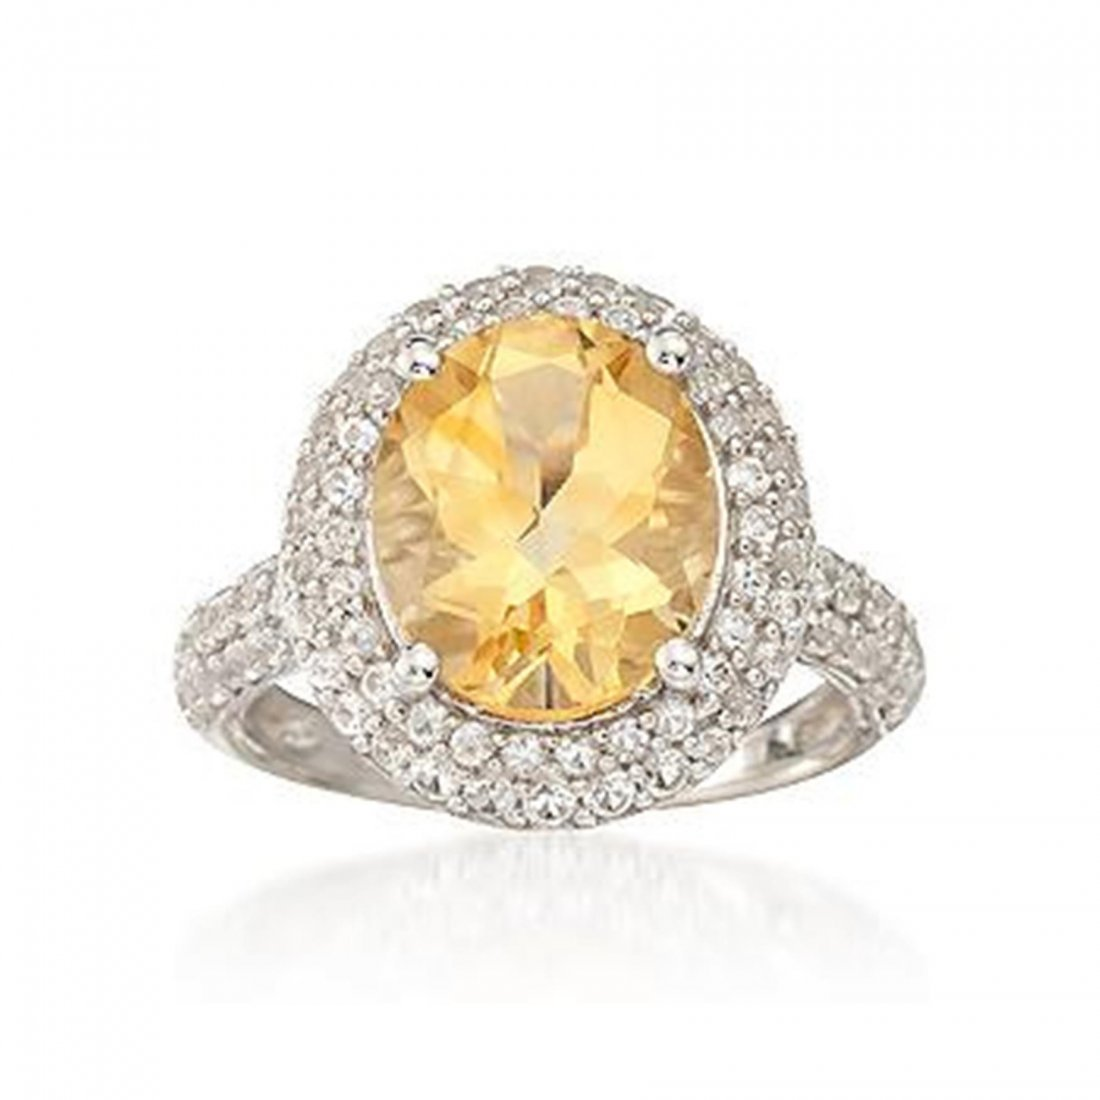 4.30 Carat Citrine Ring With 1.10 ct. t.w. White